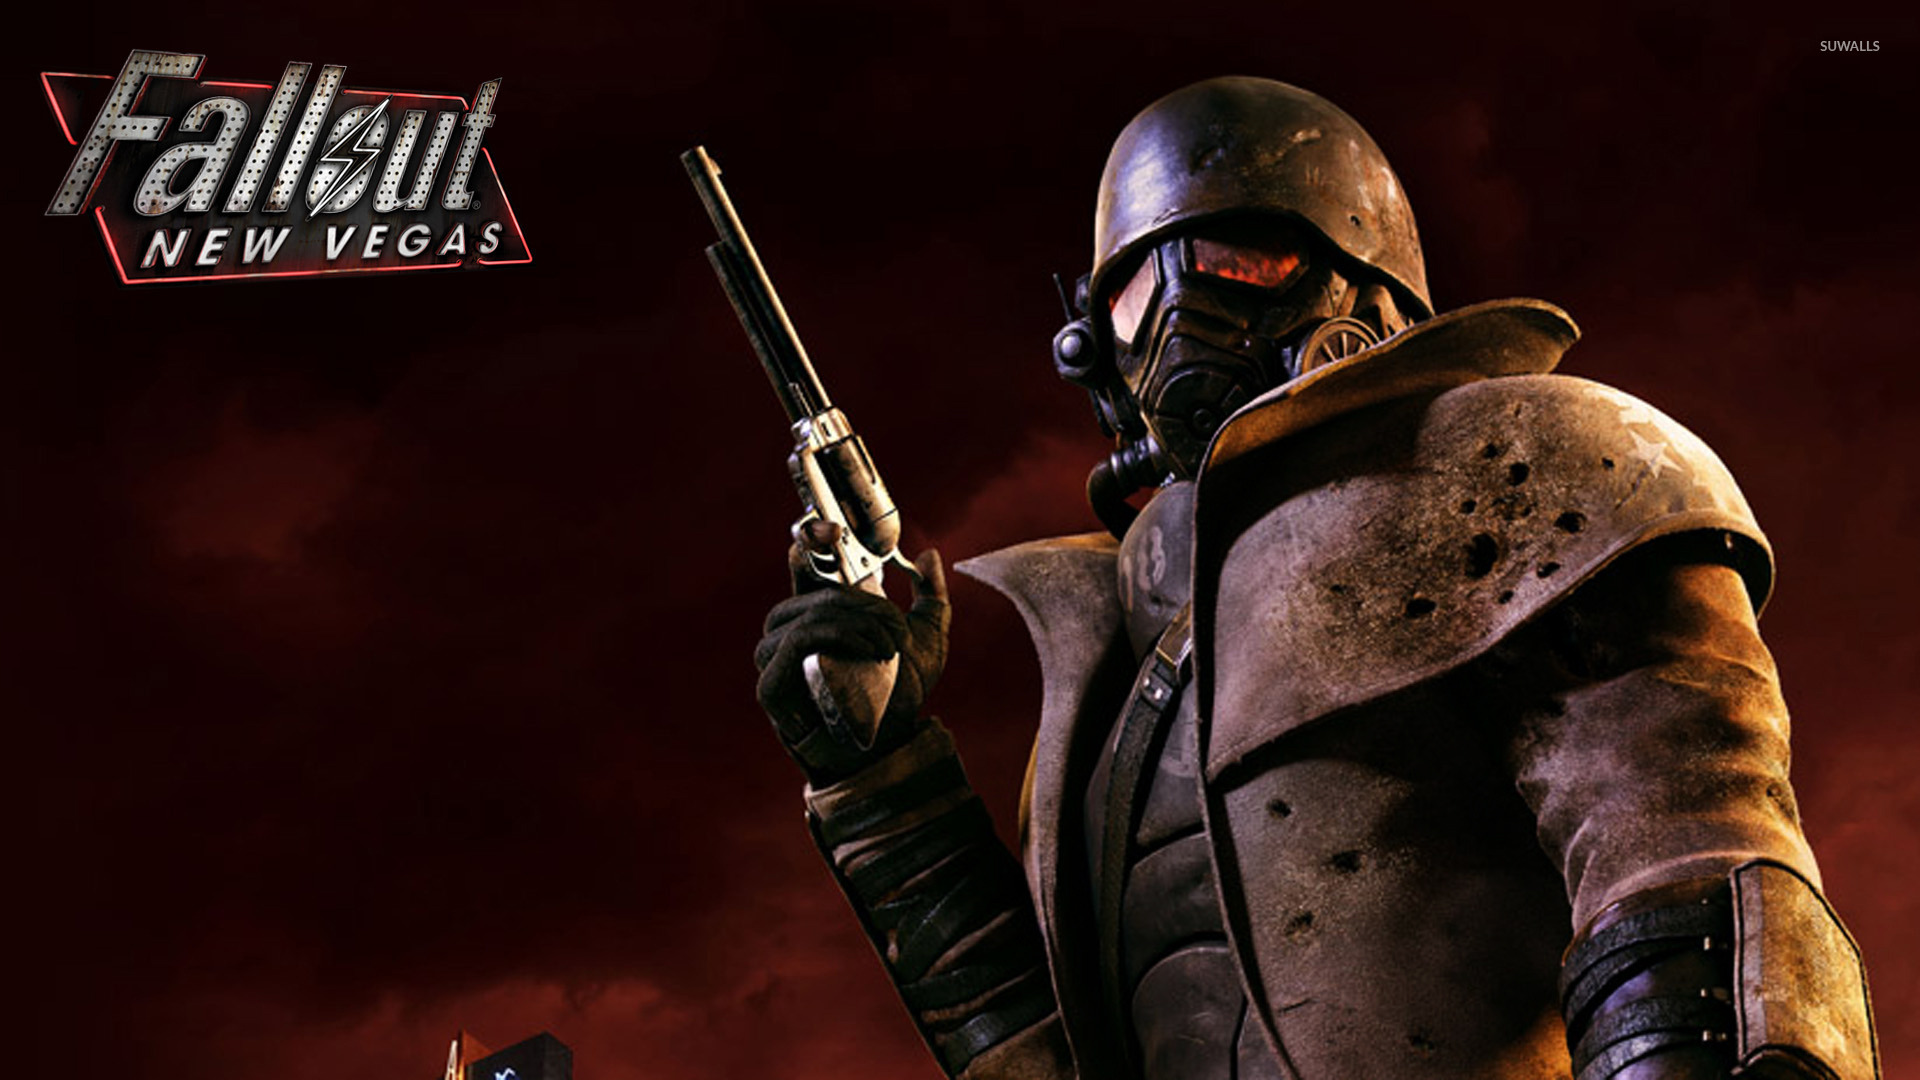 Free Download Fallout New Vegas 7 Wallpaper Game Wallpapers